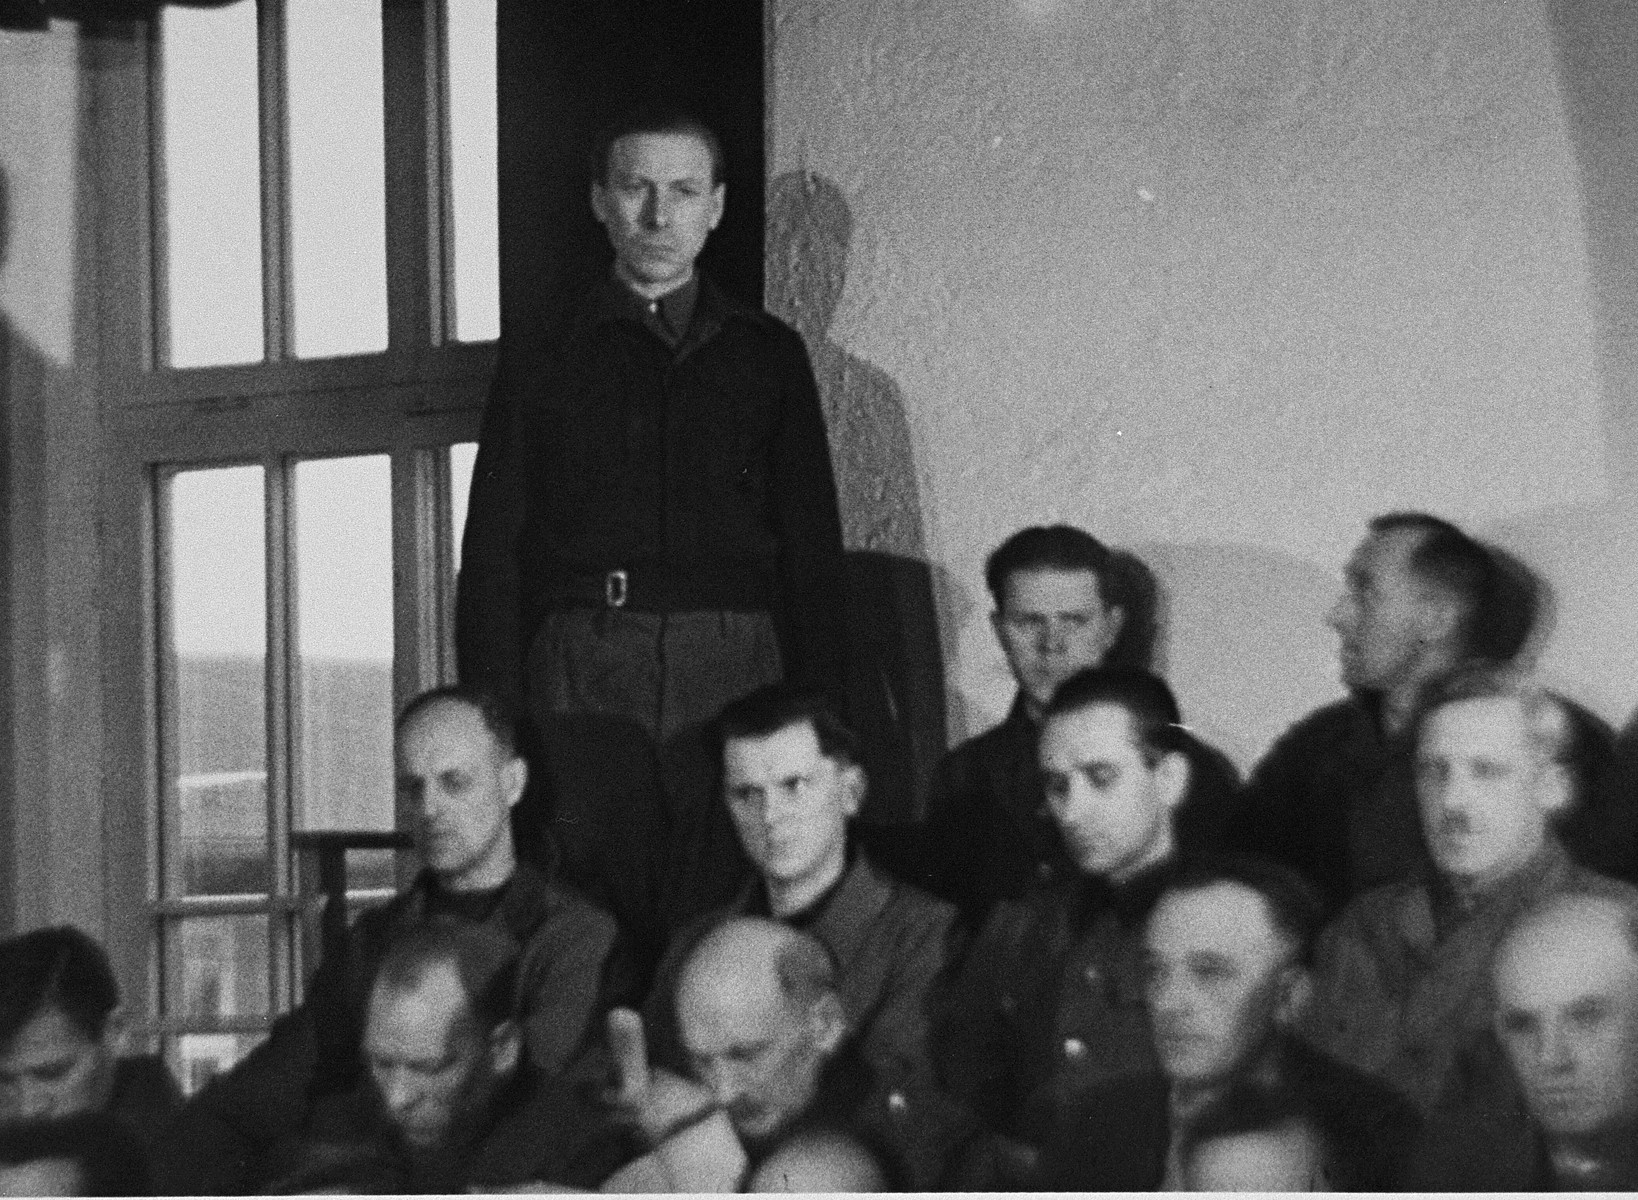 Hans Altfuldisch, stands in his place in the defendant's dock, at the trial of 61 former camp personnel and prisoners from Mauthausen.